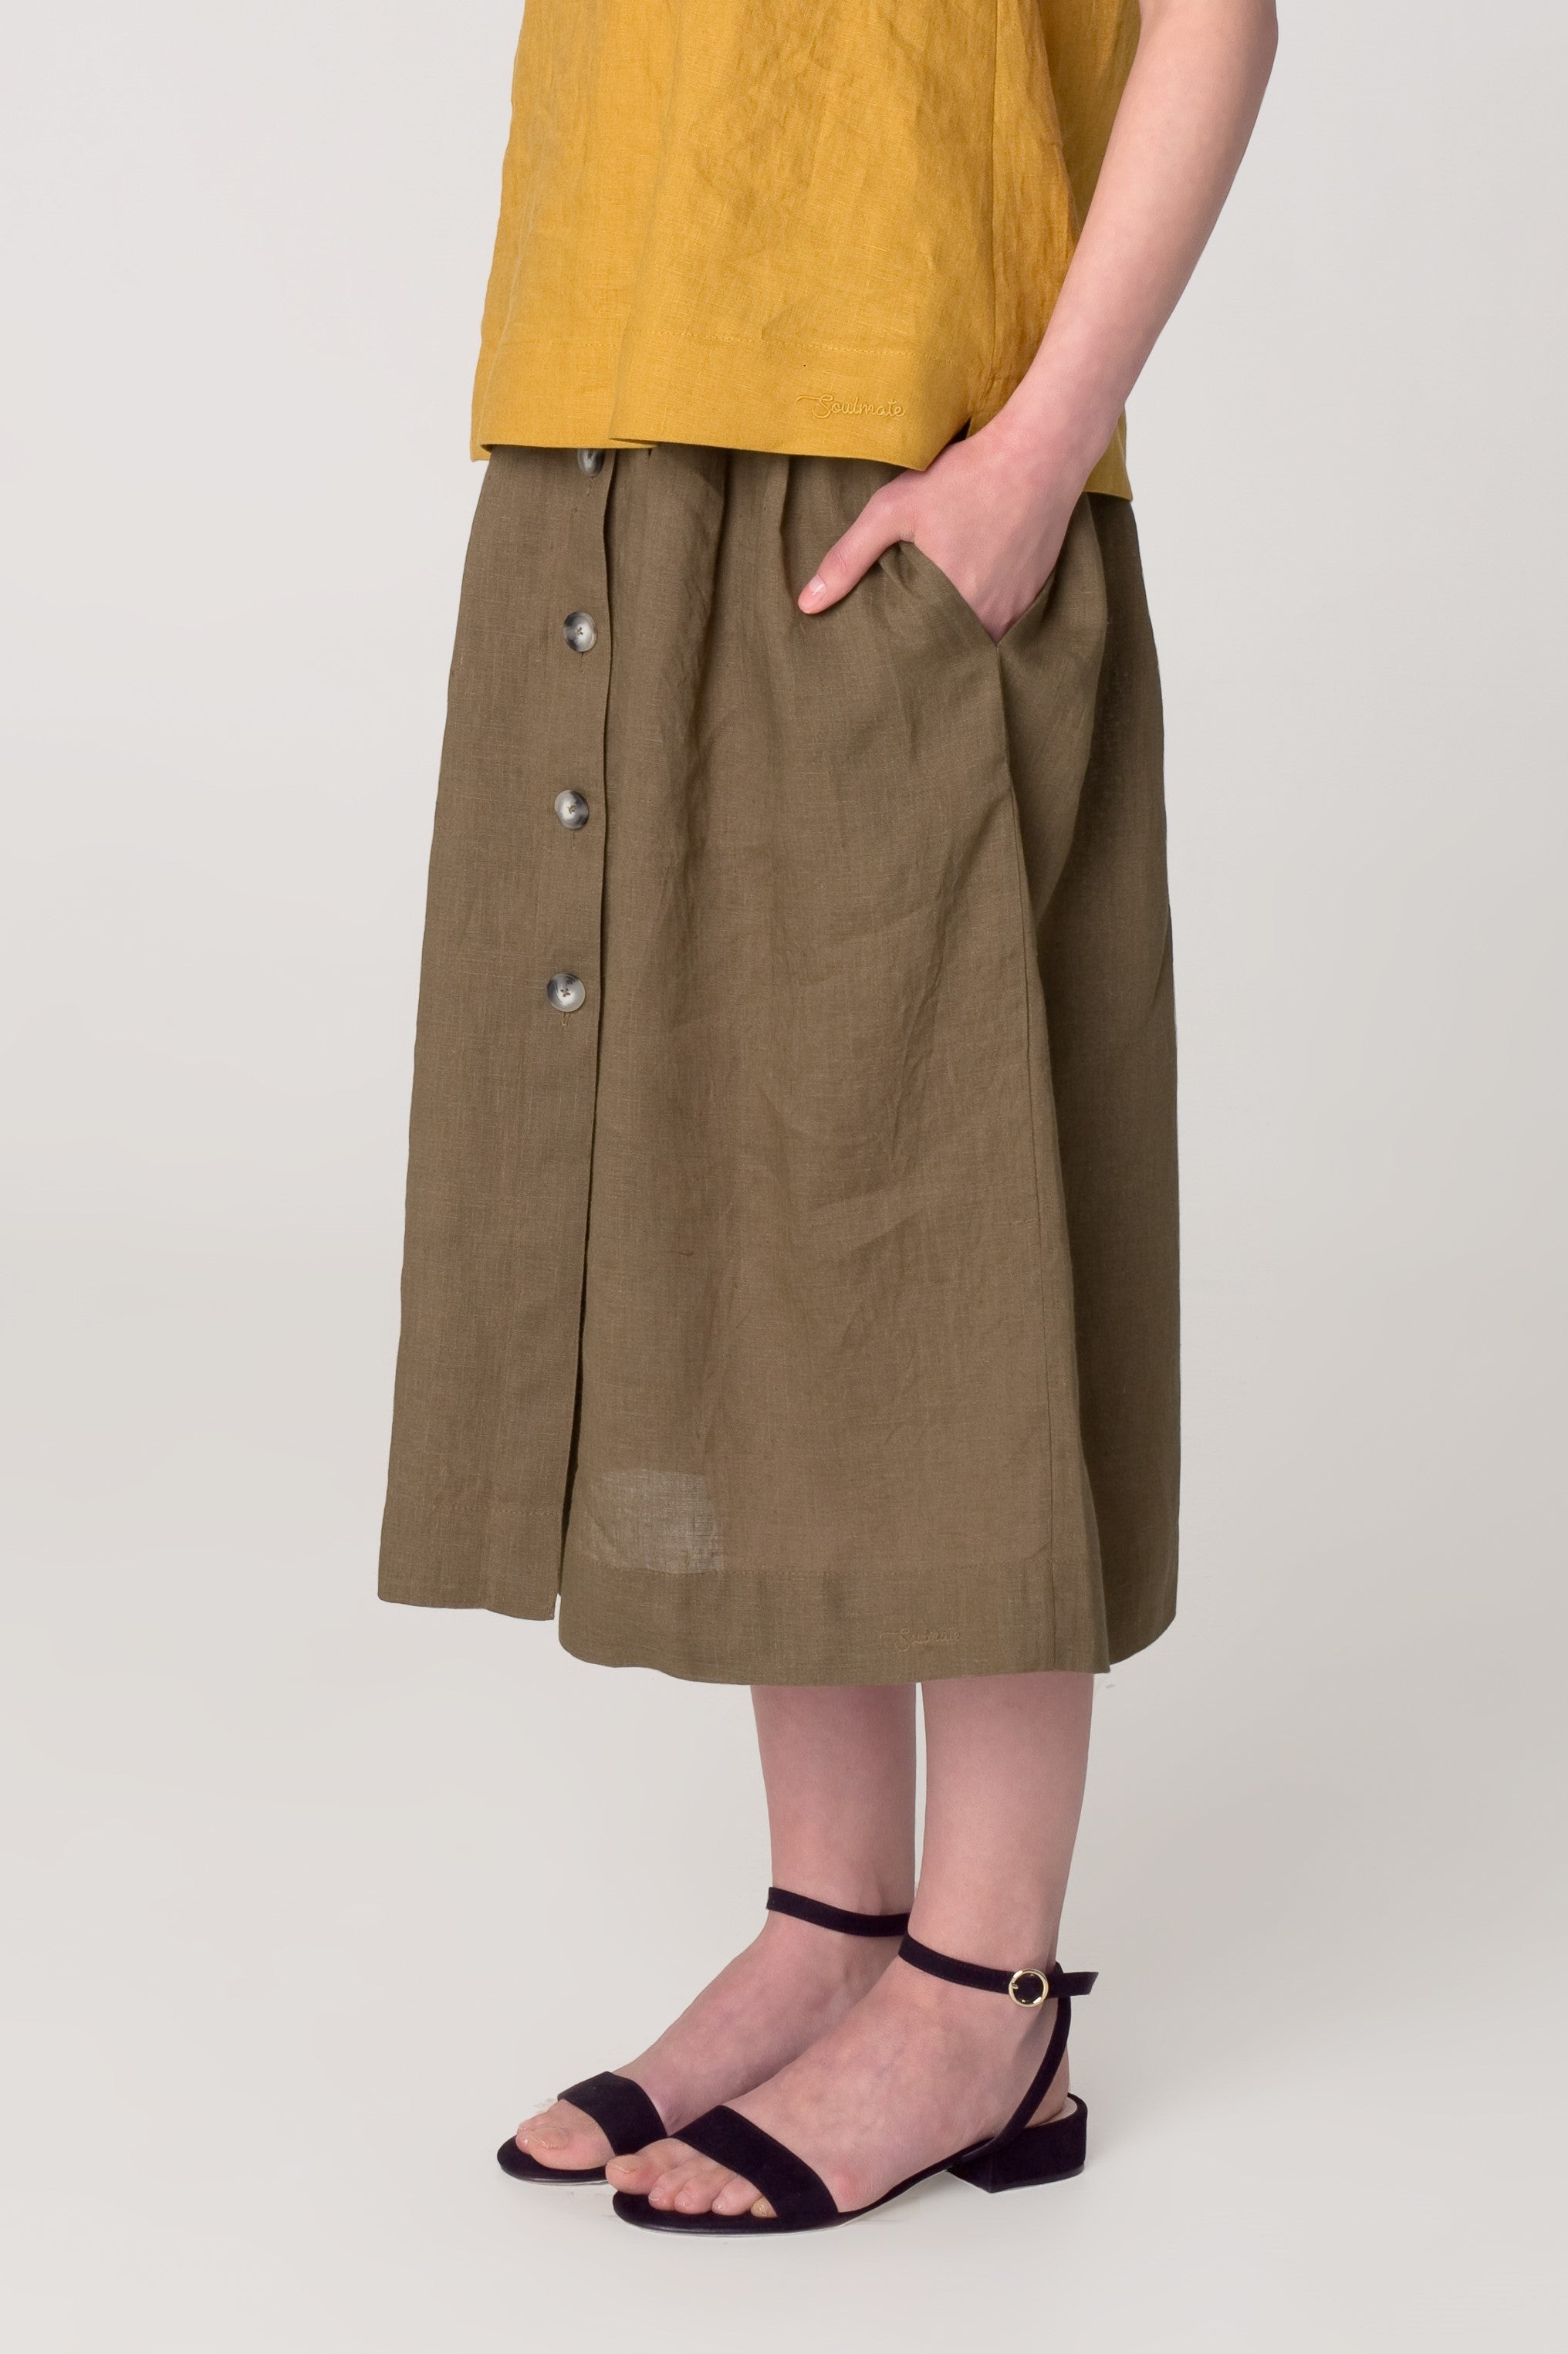 The Soulmate Store MARY Casual Linen Skirt with Pockets